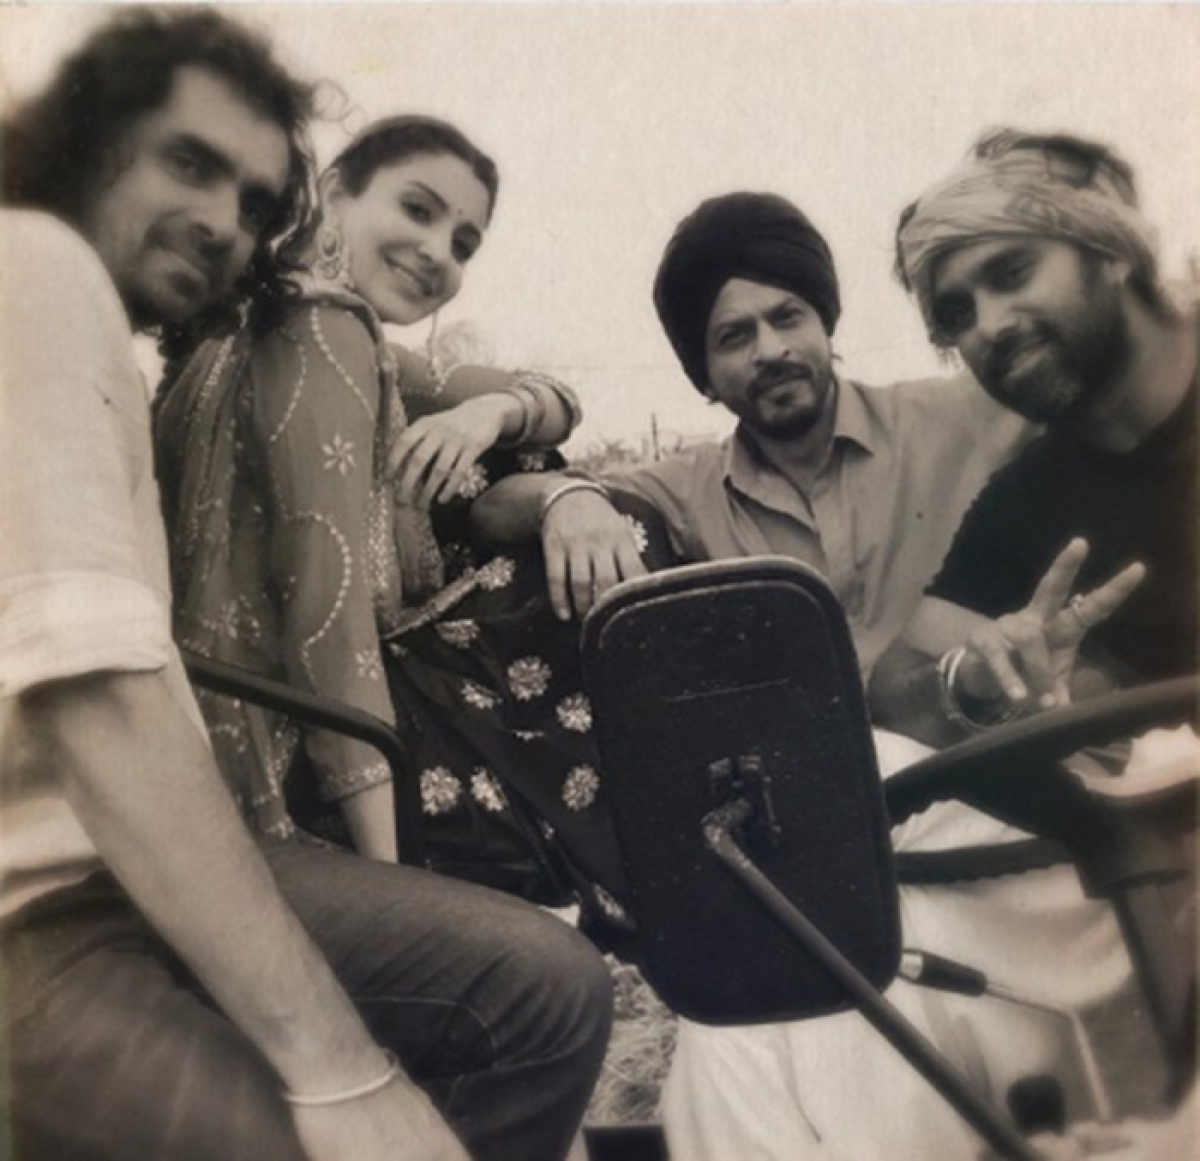 Watch: Shah Rukh Khan gives desi feels driving a tractor in Punjab